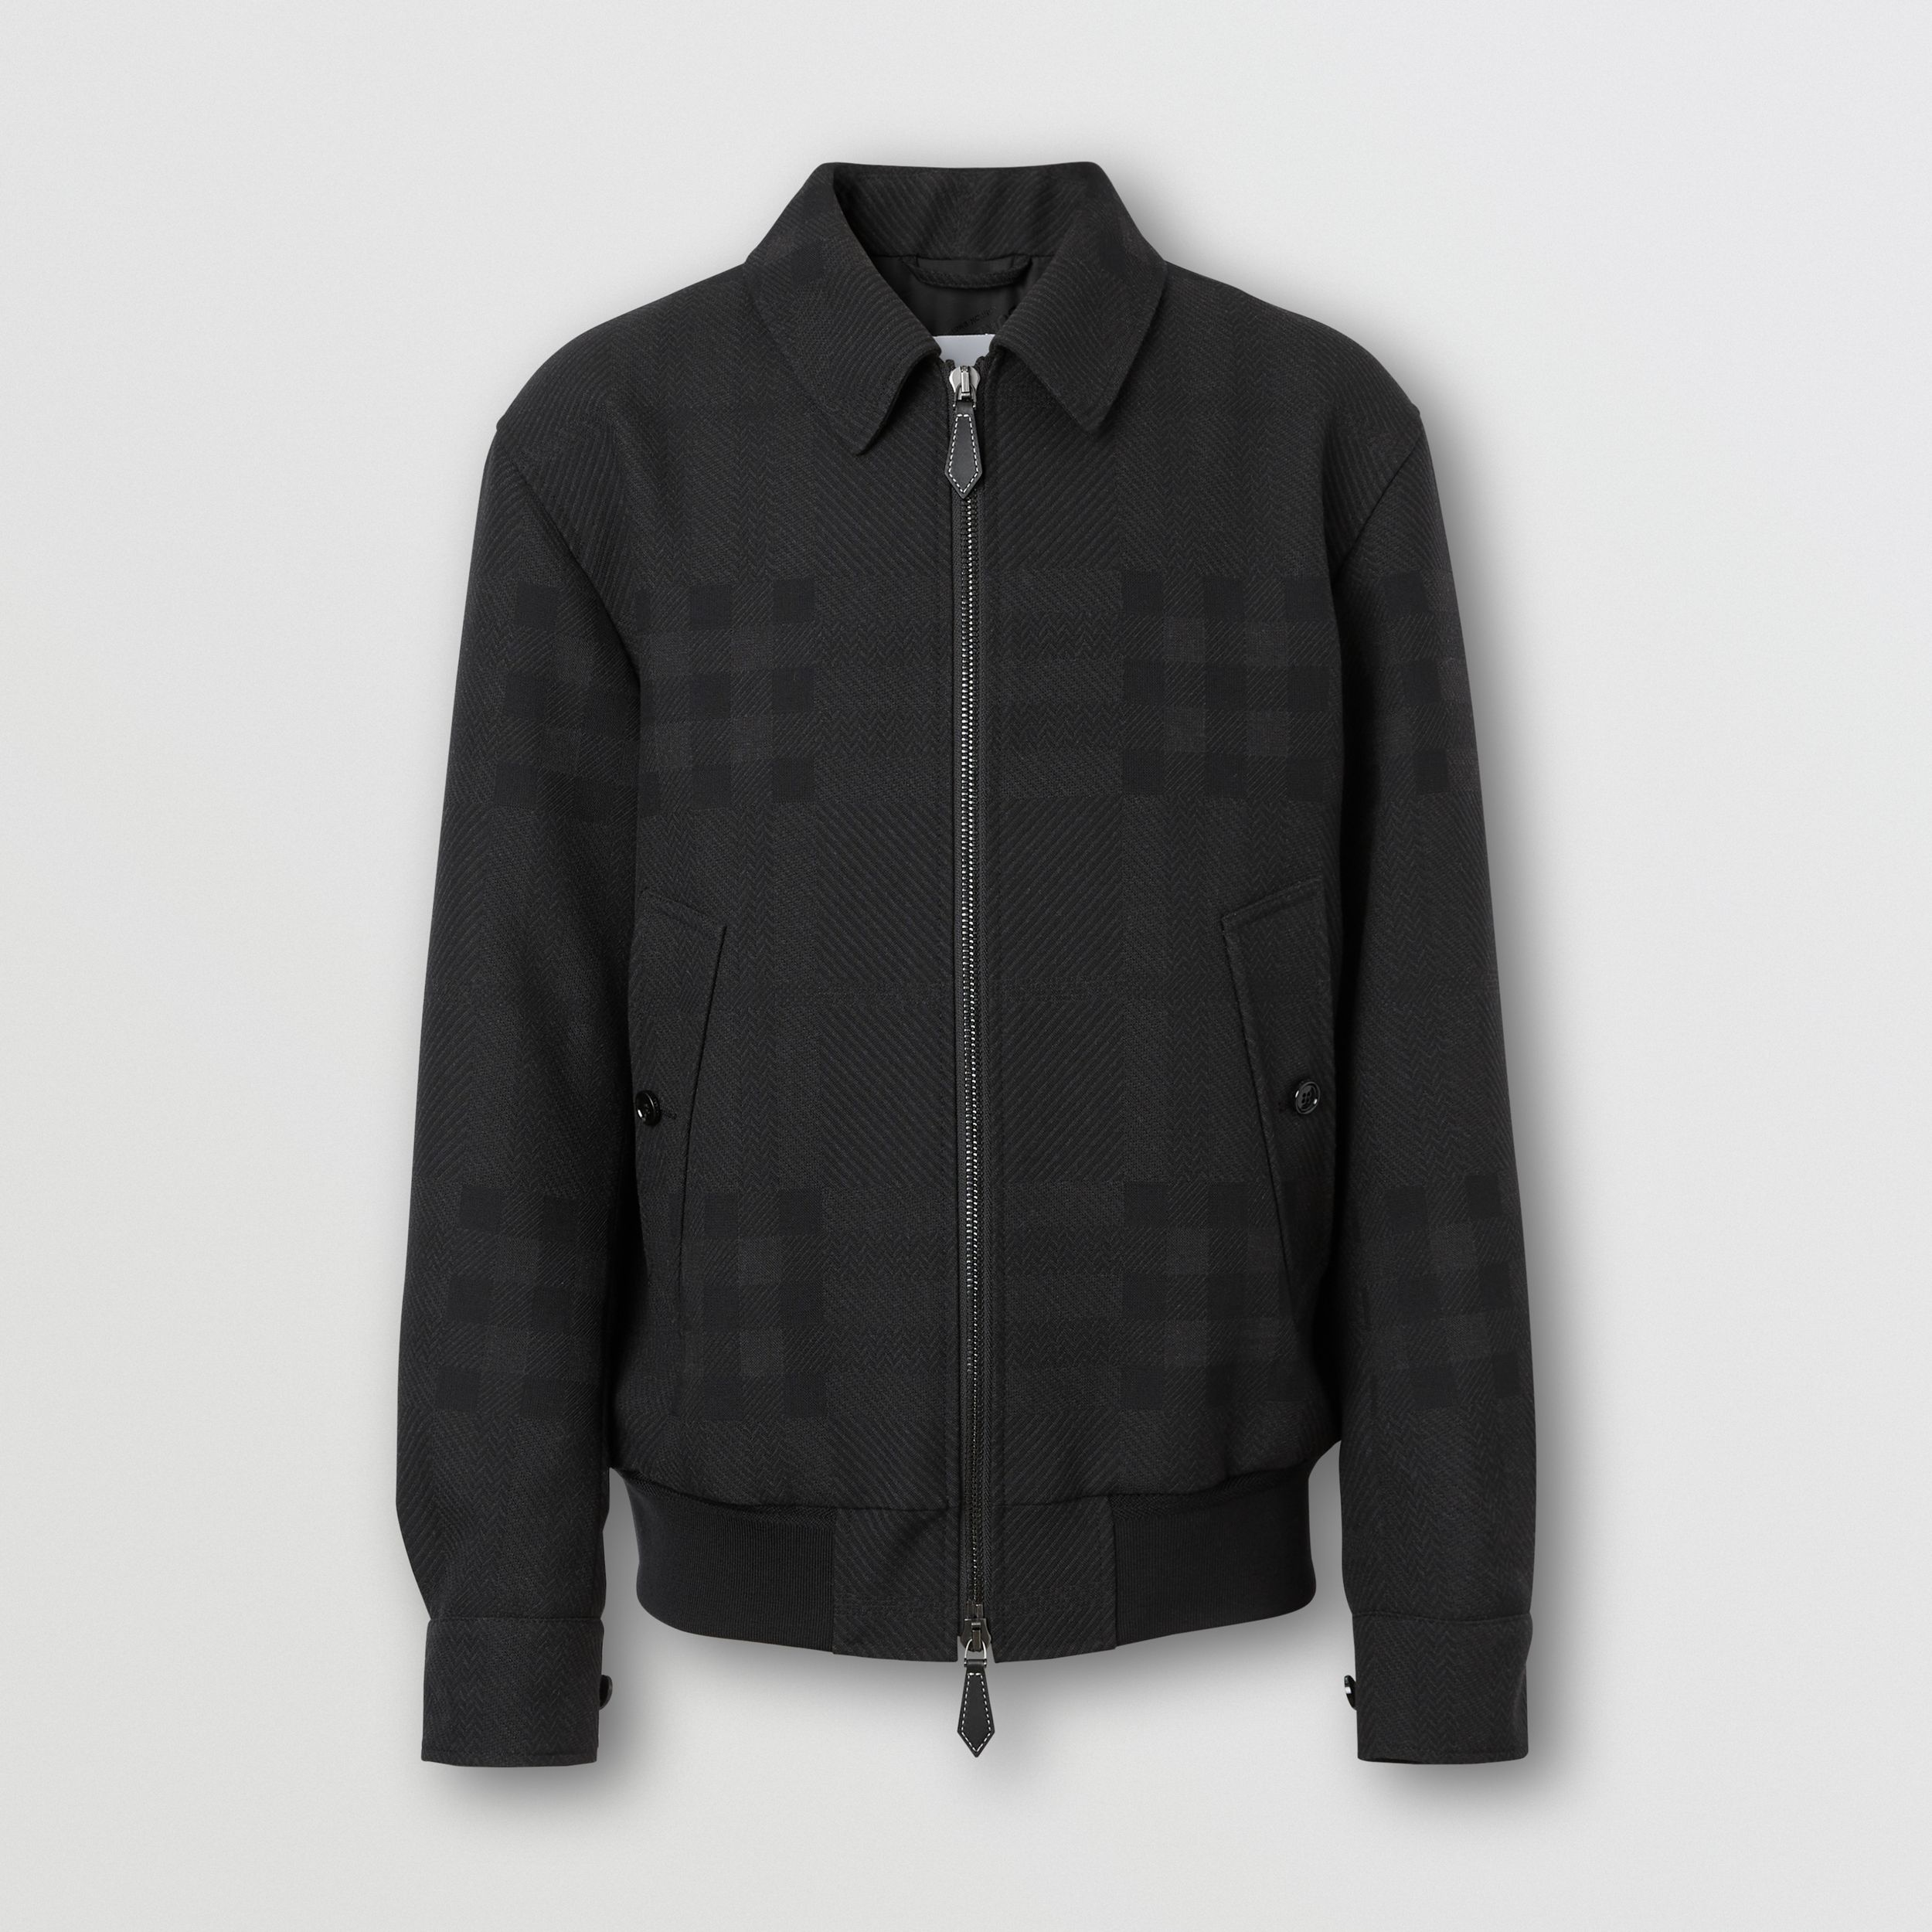 Check Wool Jacquard Harrington Jacket in Charcoal Black - Men | Burberry - 4